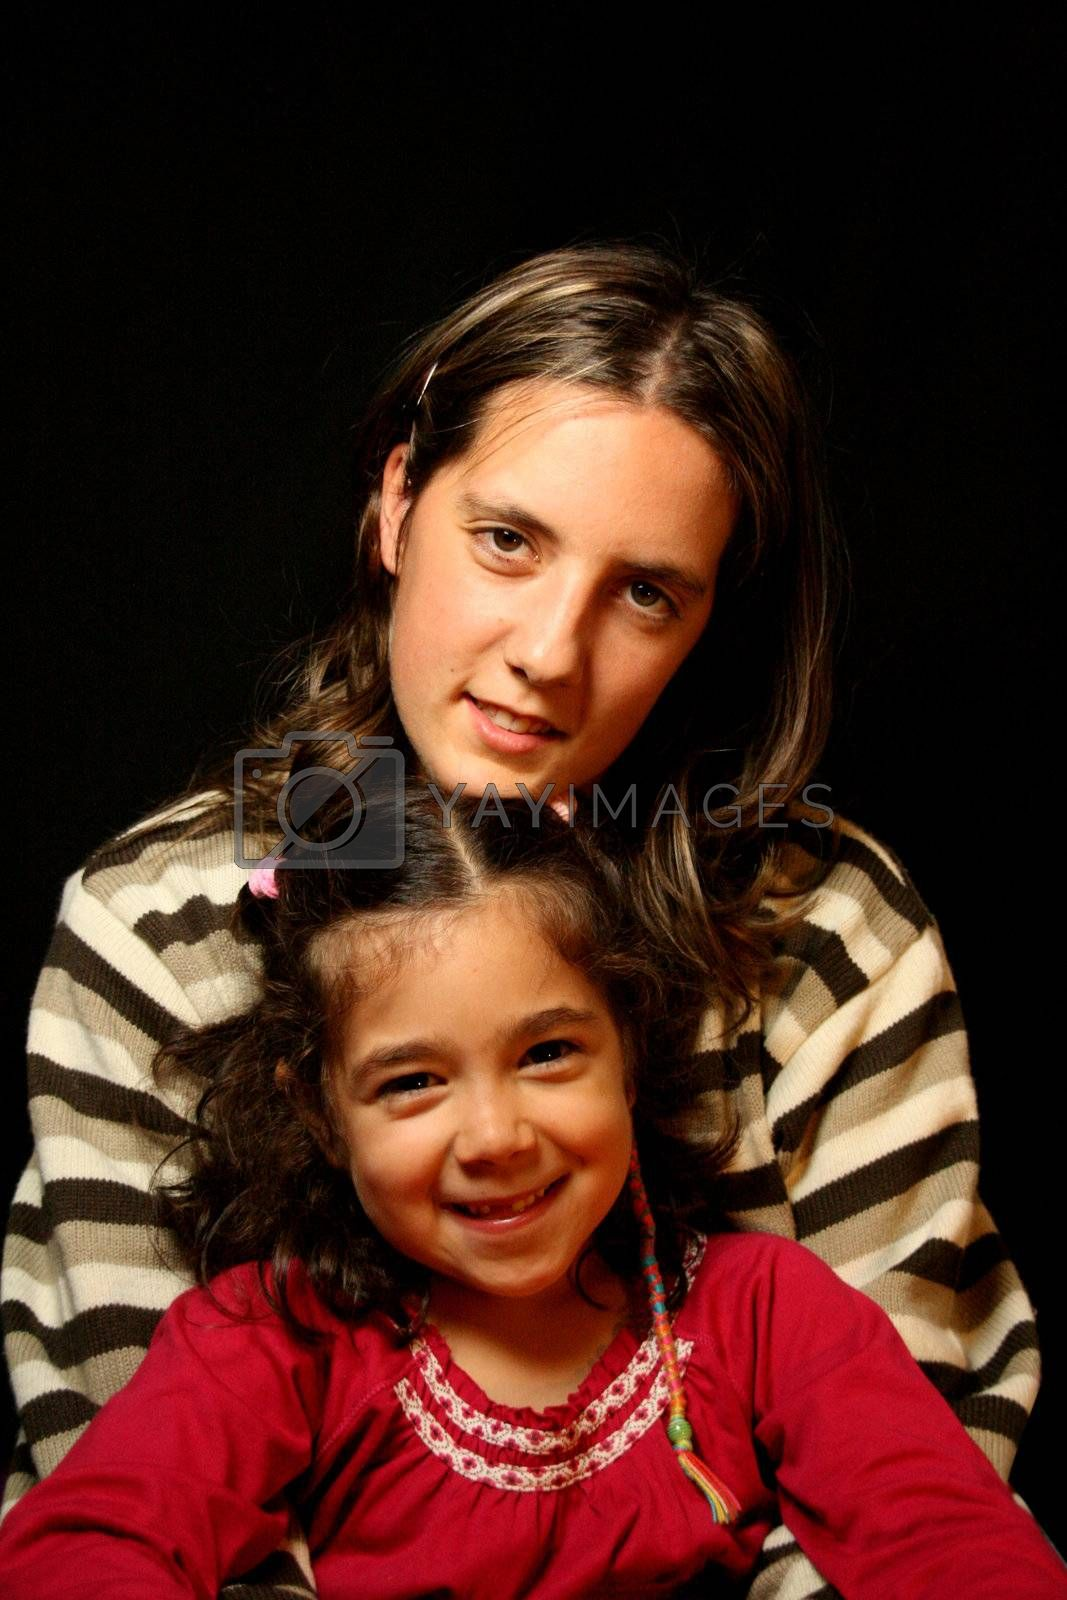 aunt and nephews over black background by jpcasais